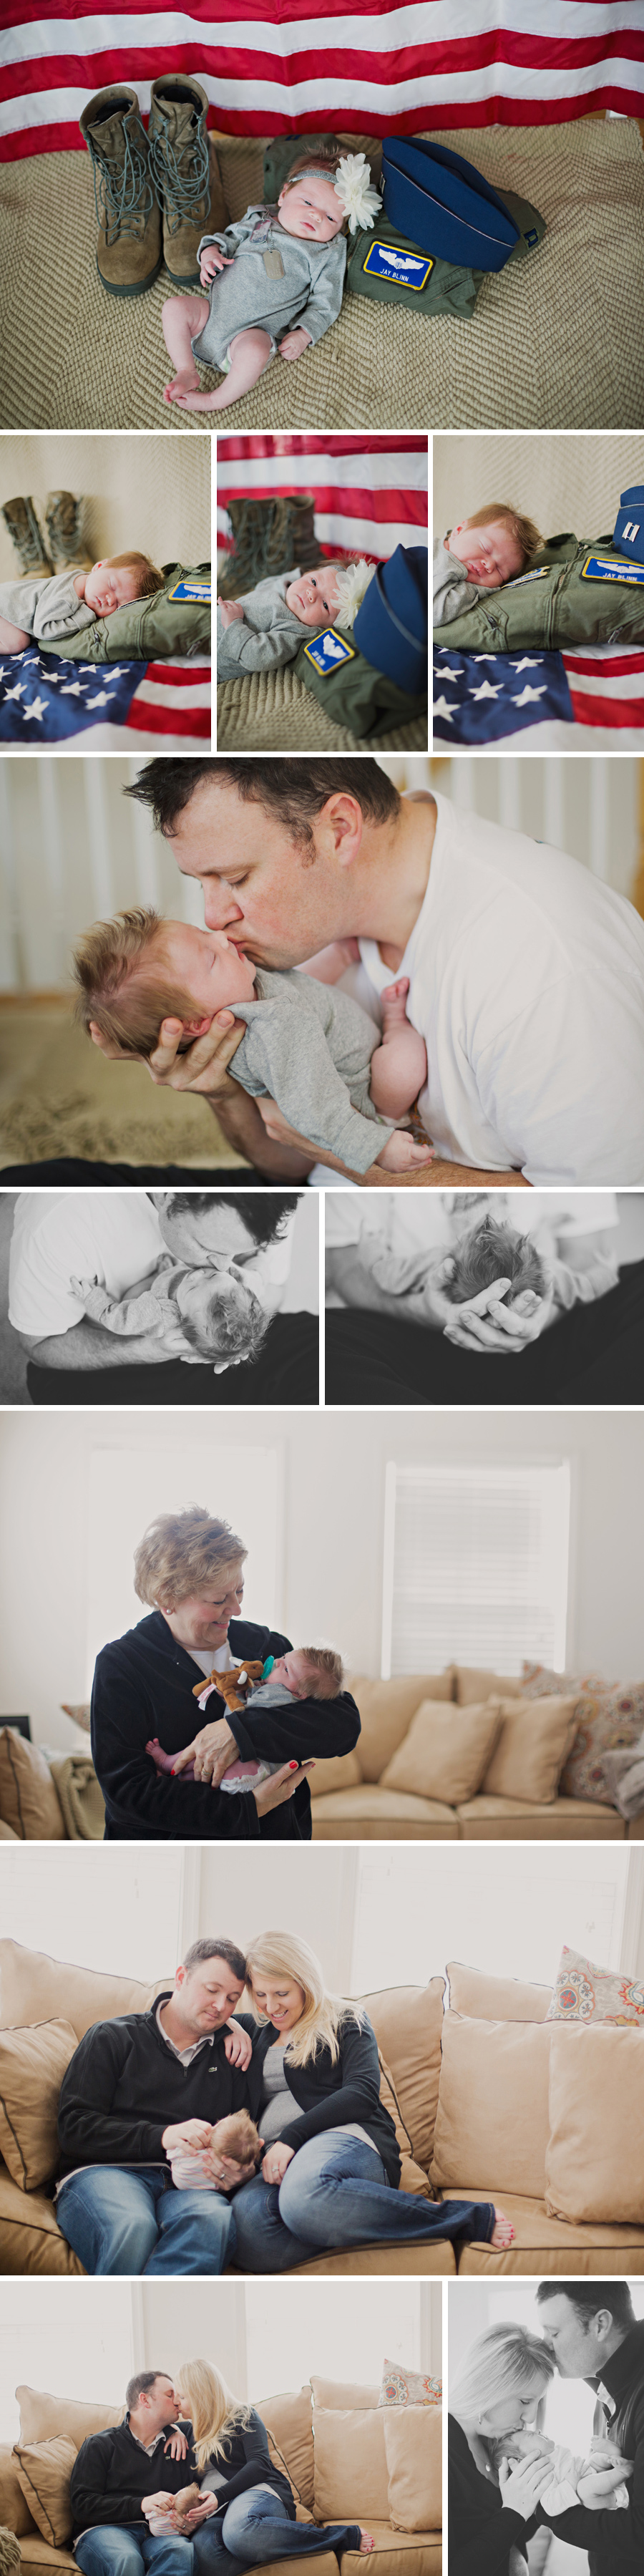 Delaware-Newborn-Photographerc003